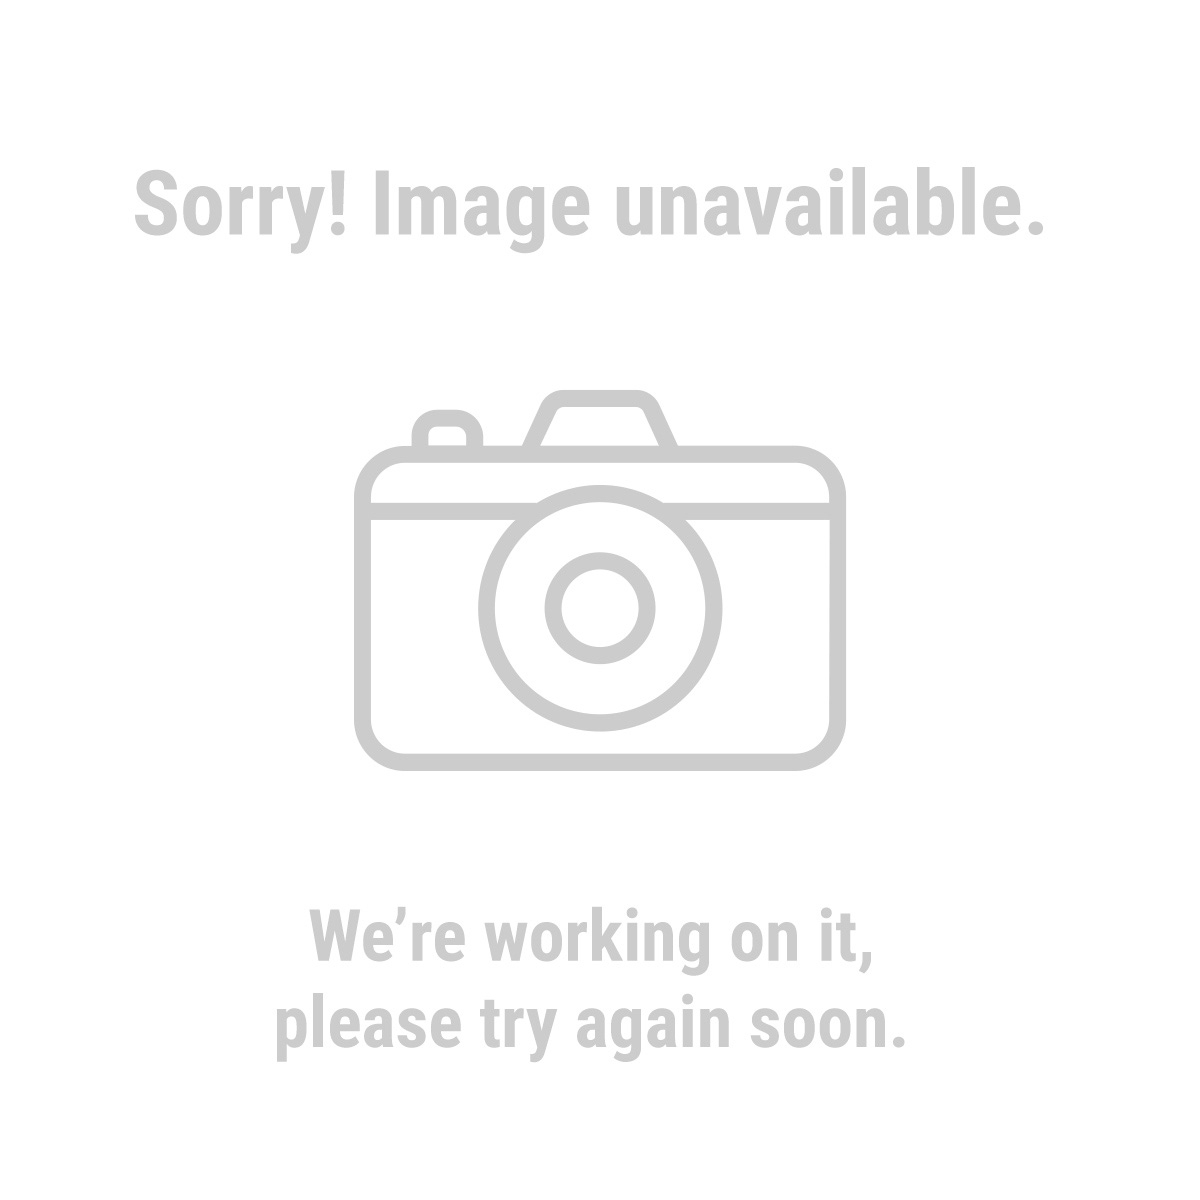 Haul-Master 69626 12 Volt Magnetic Towing Light Kit